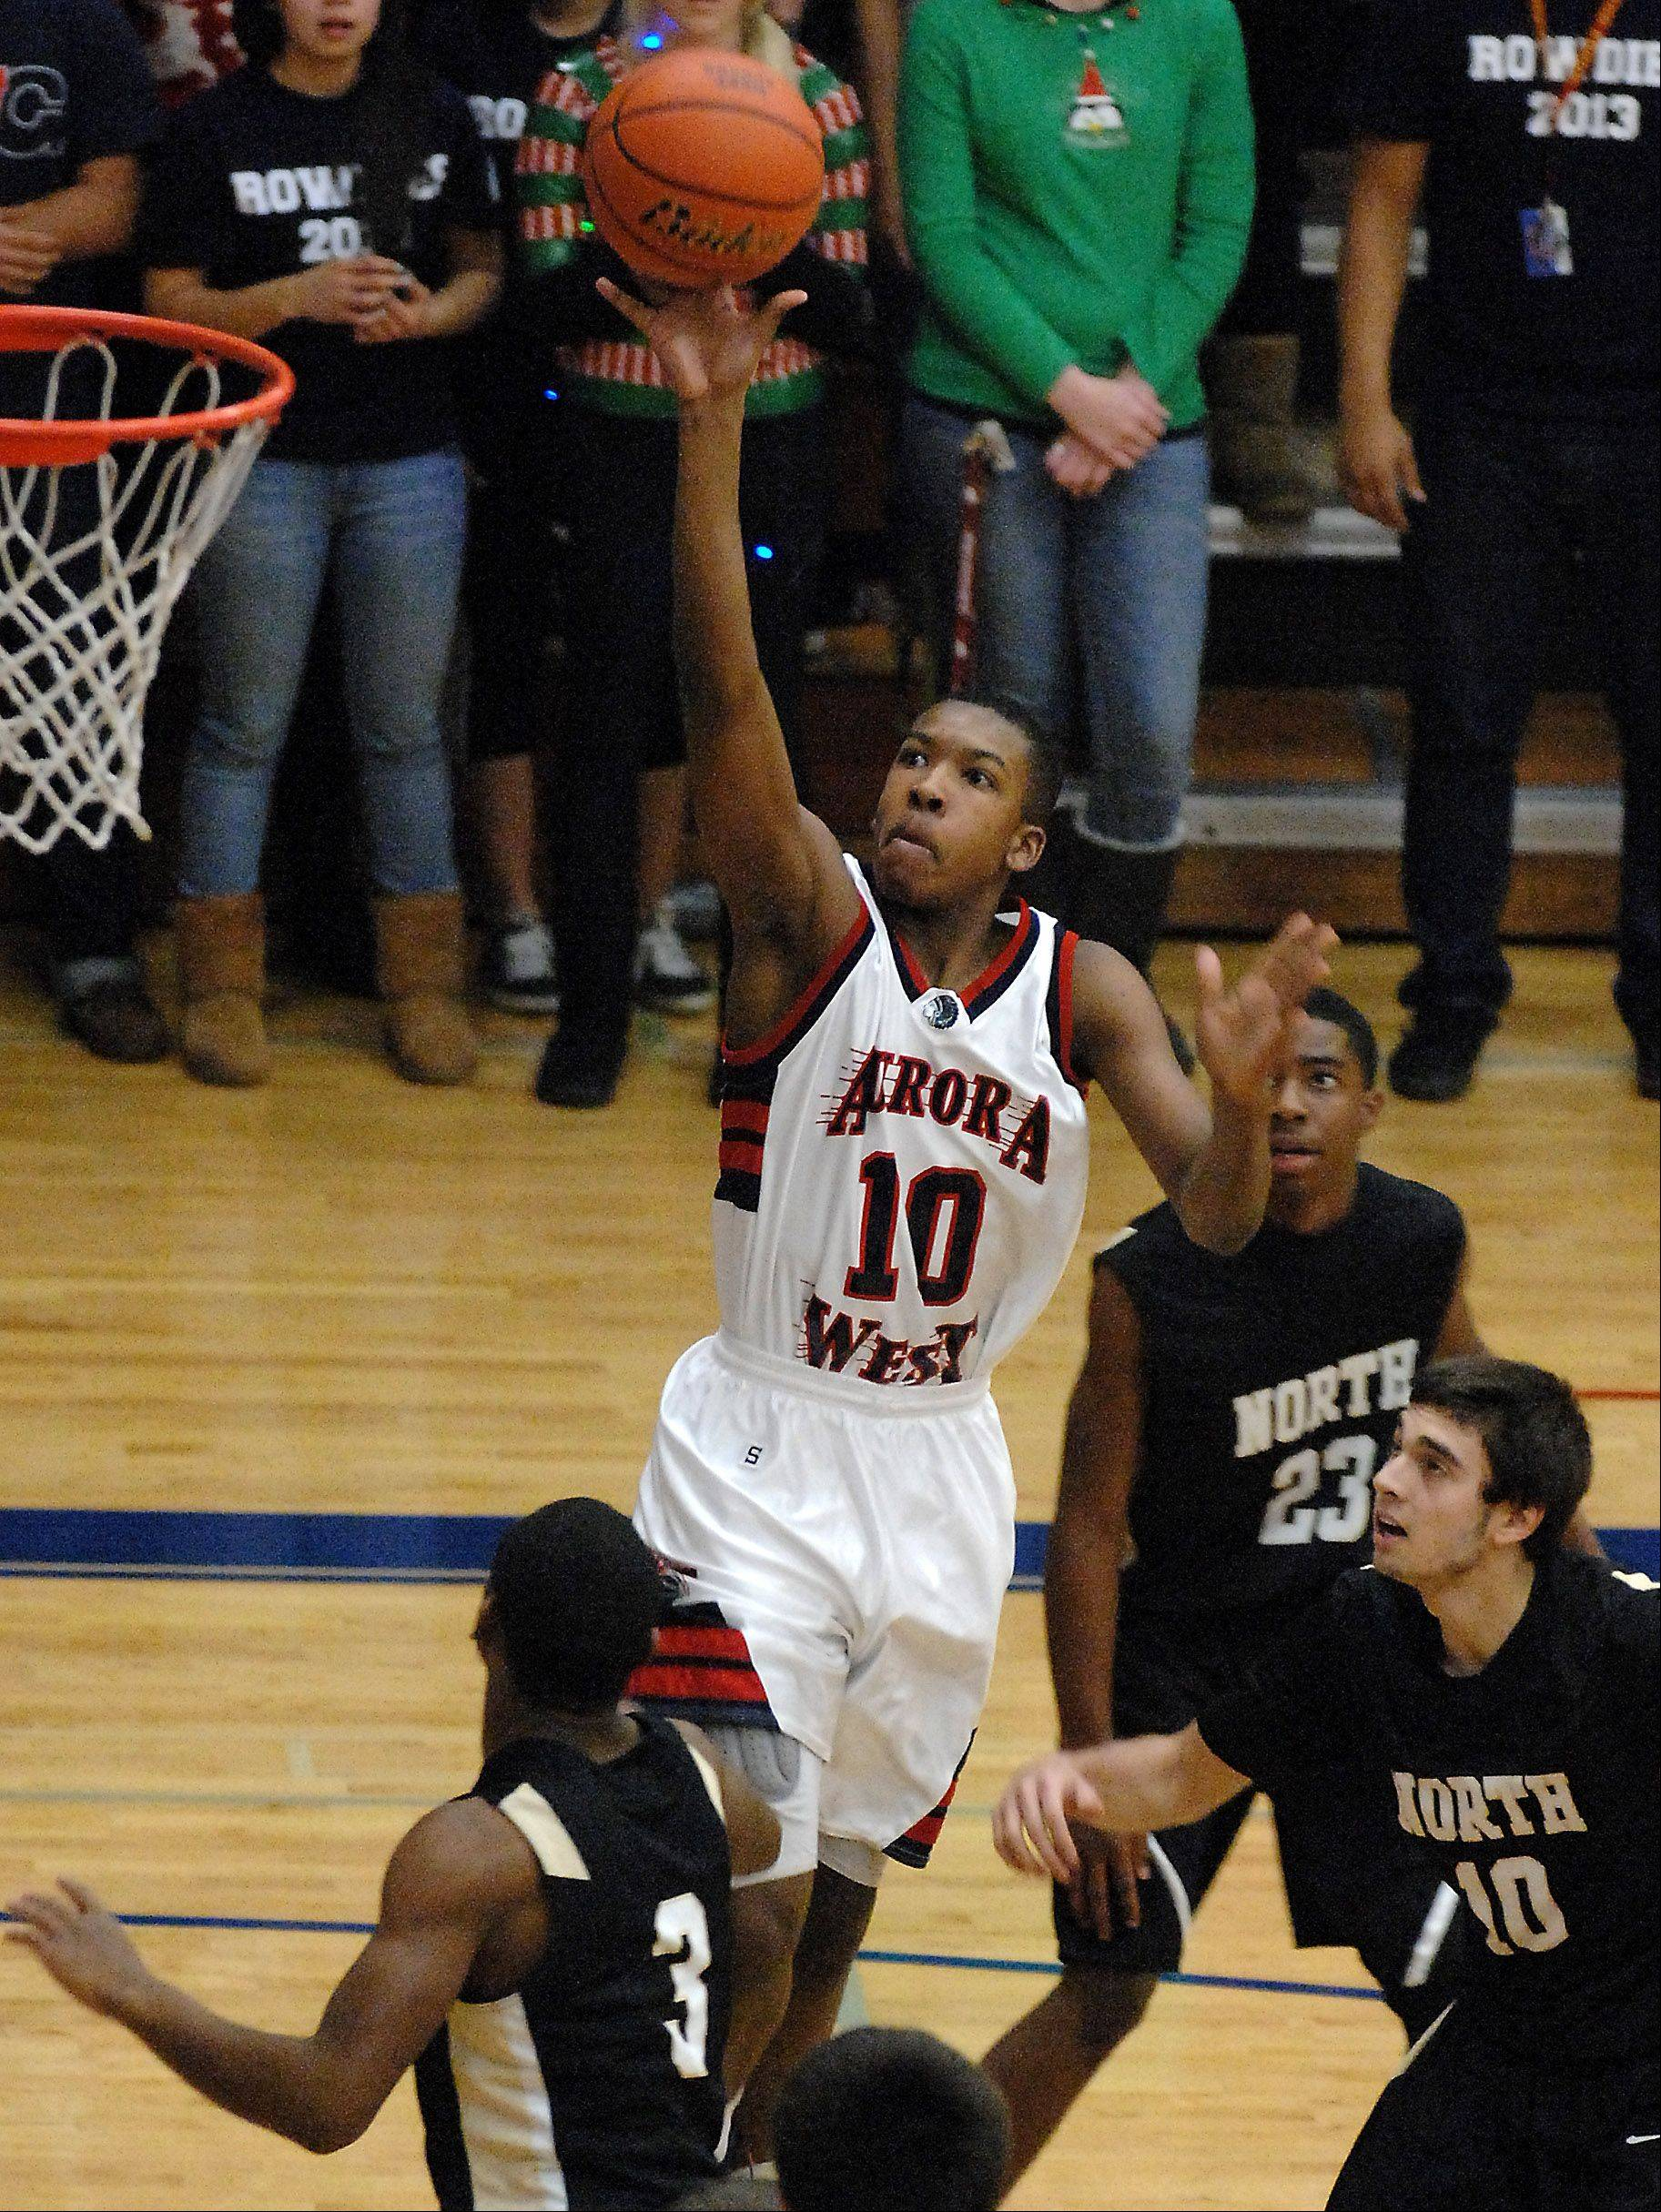 West Aurora's Jontrel Walker scores on a running one-hander against Glenbard North.